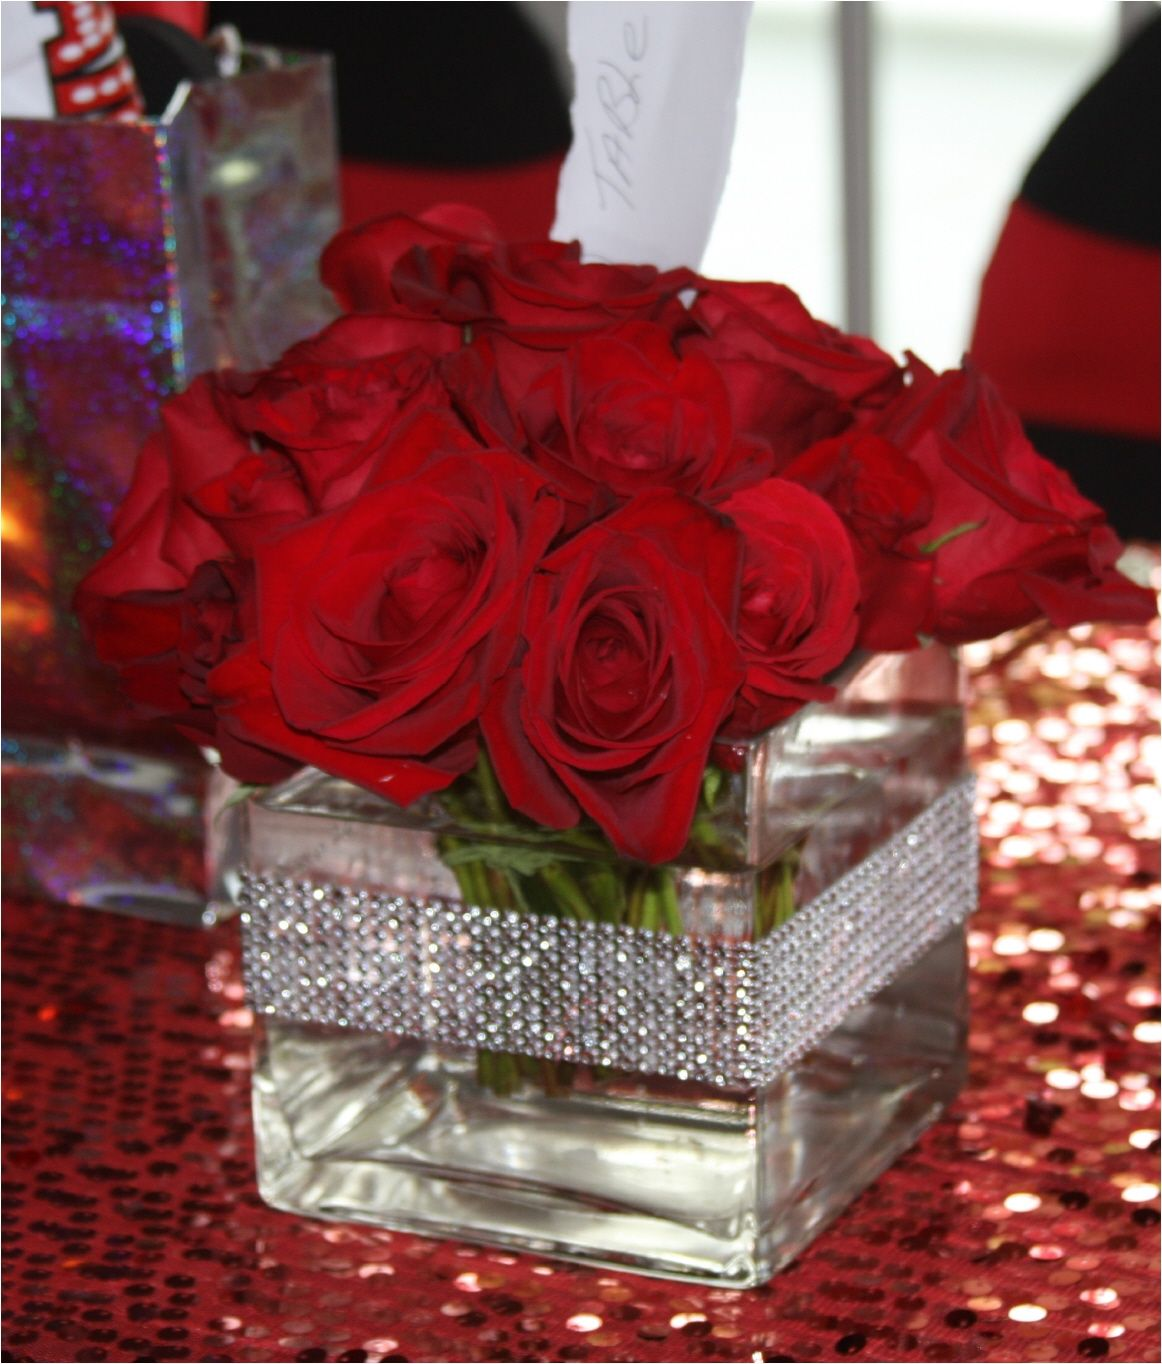 Wedding decorations red  RedRoses centerpiece NewYork Sweet Flora Design Martinez Roses